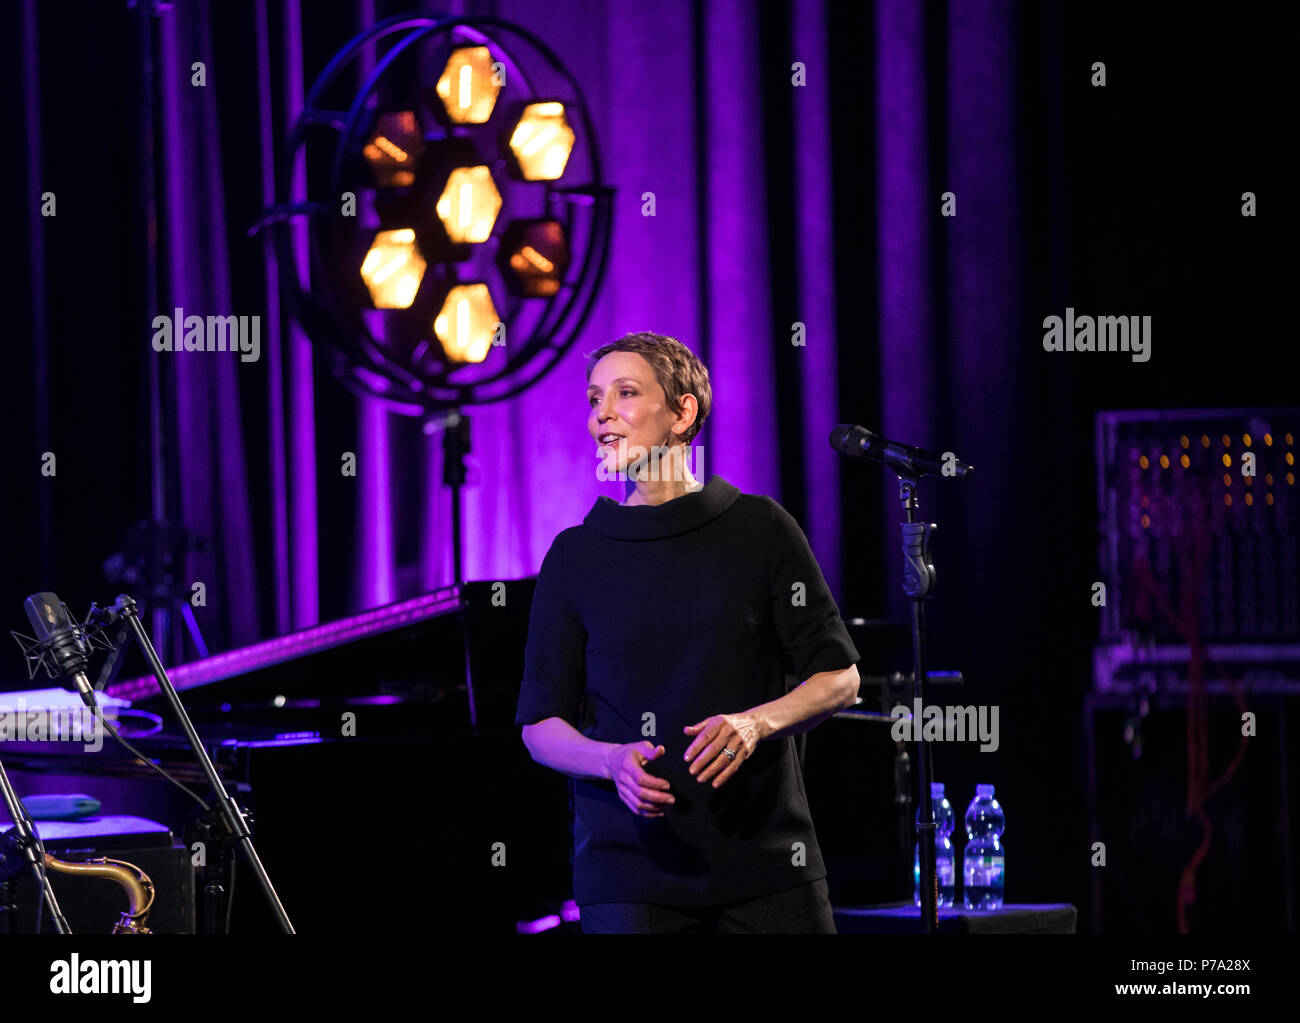 Cracow, Poland - April 26, 2018: The performance of the American jazz vocalist Stacey Kent with her accompanying quartet on the Kijów.Centre stage in - Stock Image